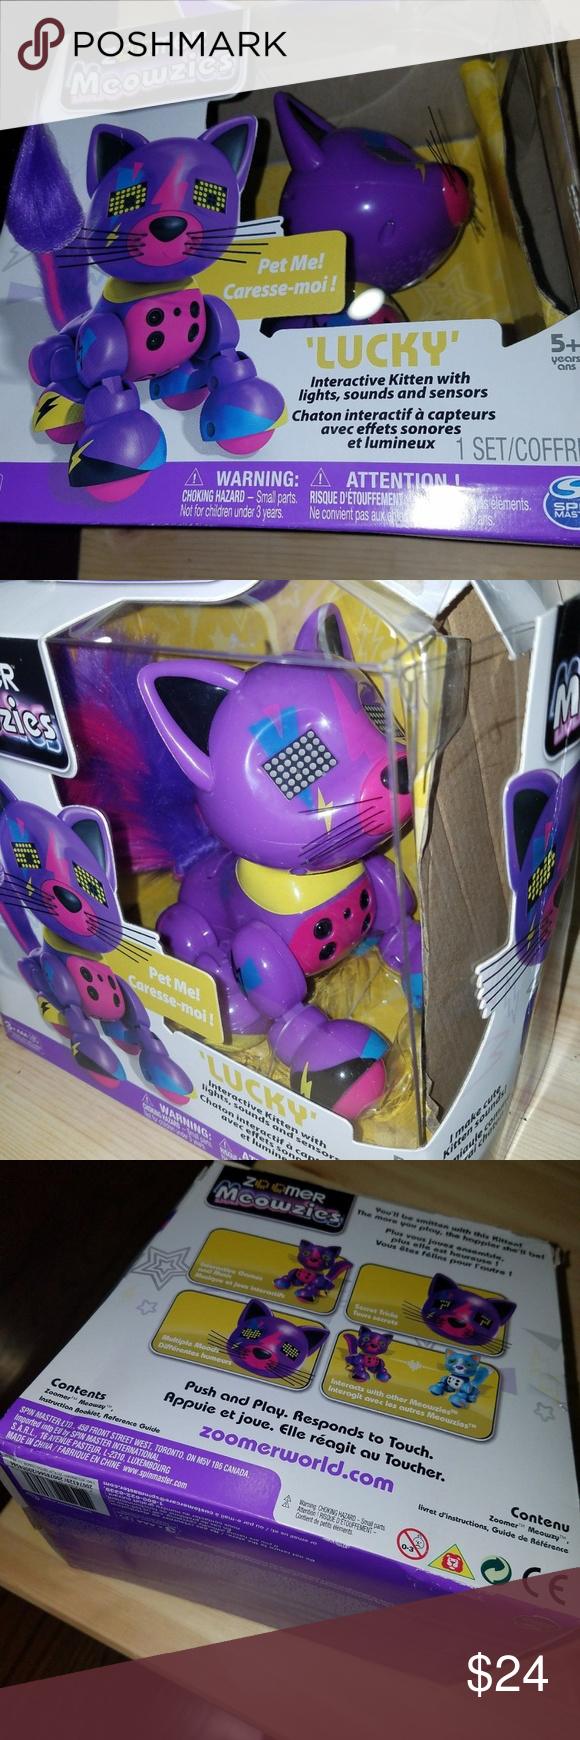 New Zoomer Meowzies Lucky Interactive Kitten Toy New Hot Toy Zoomer Meowzy Is The Sweet Super Friendly Interactive Feline Who Kitten Toys Hot Toys Kittens